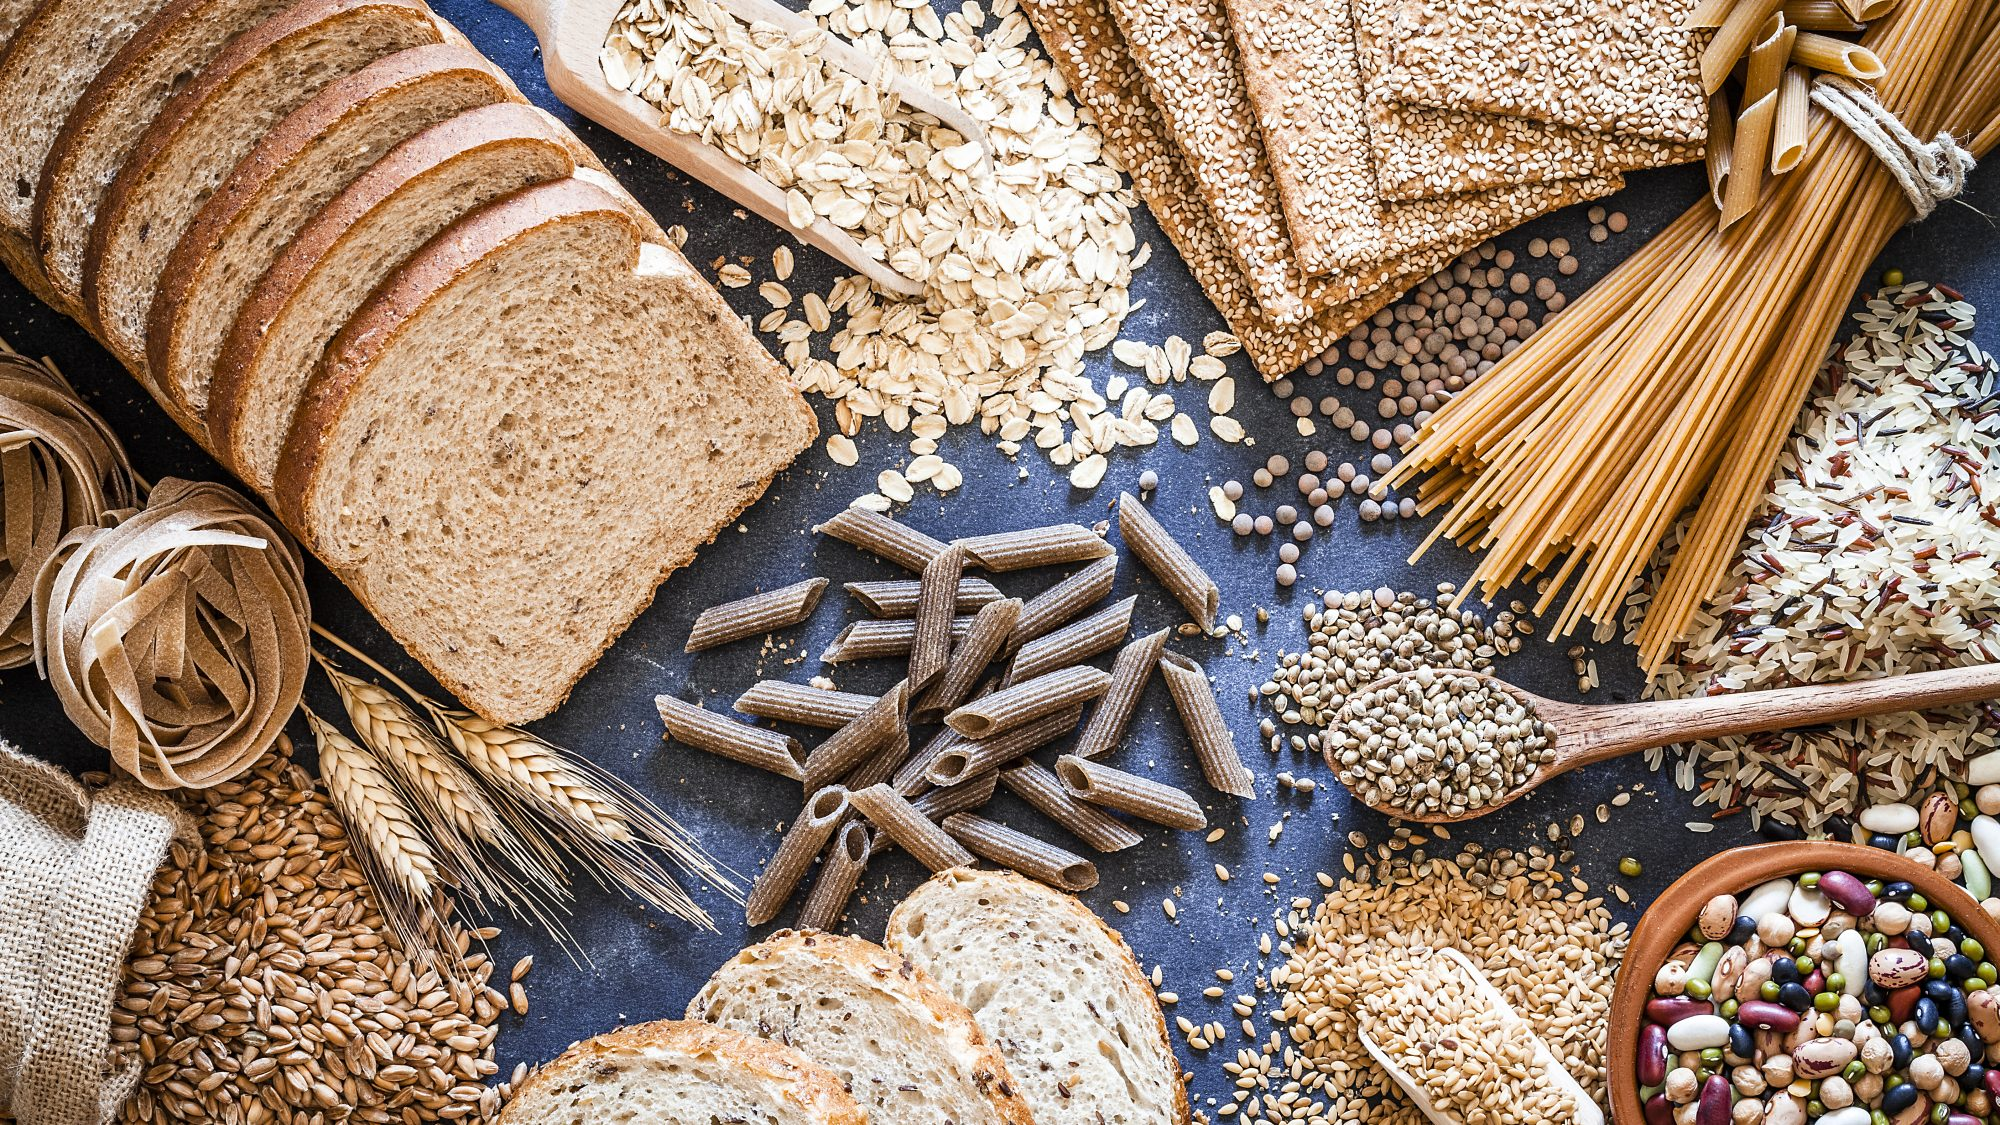 Healthiest-grains-to-eat: various types of whole grains